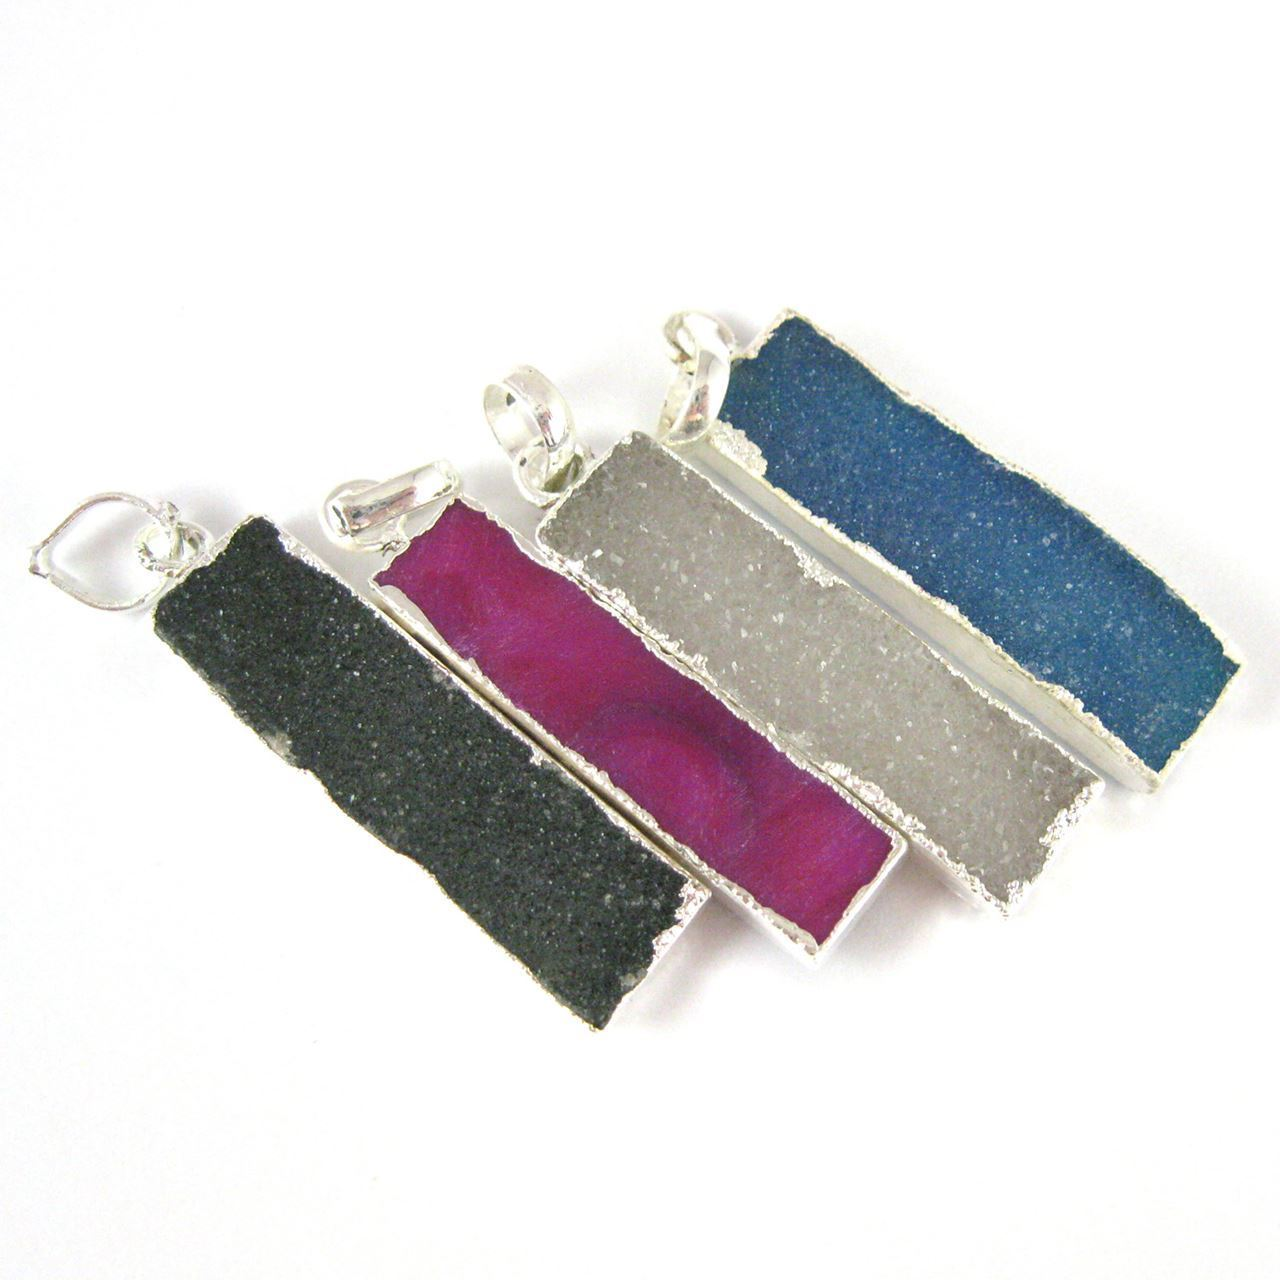 Natural Druzy Agate Bar Pendant, Silver dipped Long Vertical Bar-Blue